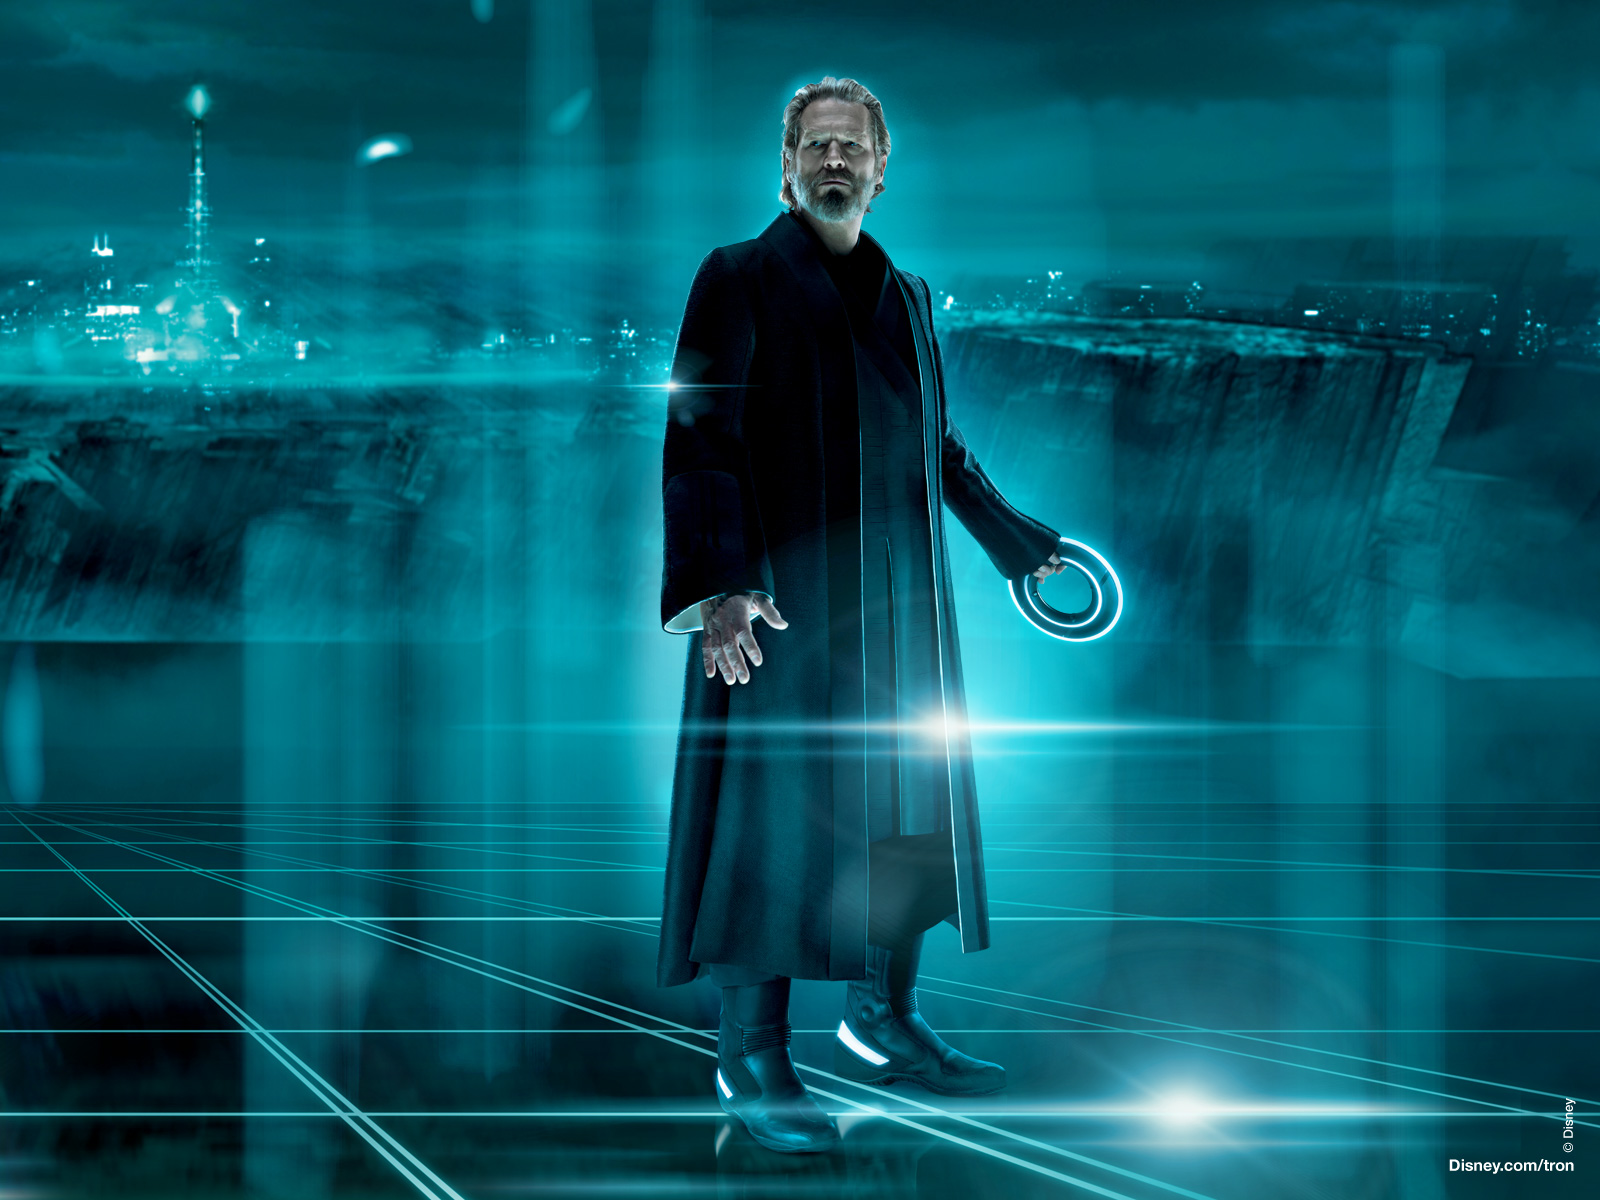 Destination Pong (Precognition and the Quantum Brain, pt. 1) Flynntronlegacy